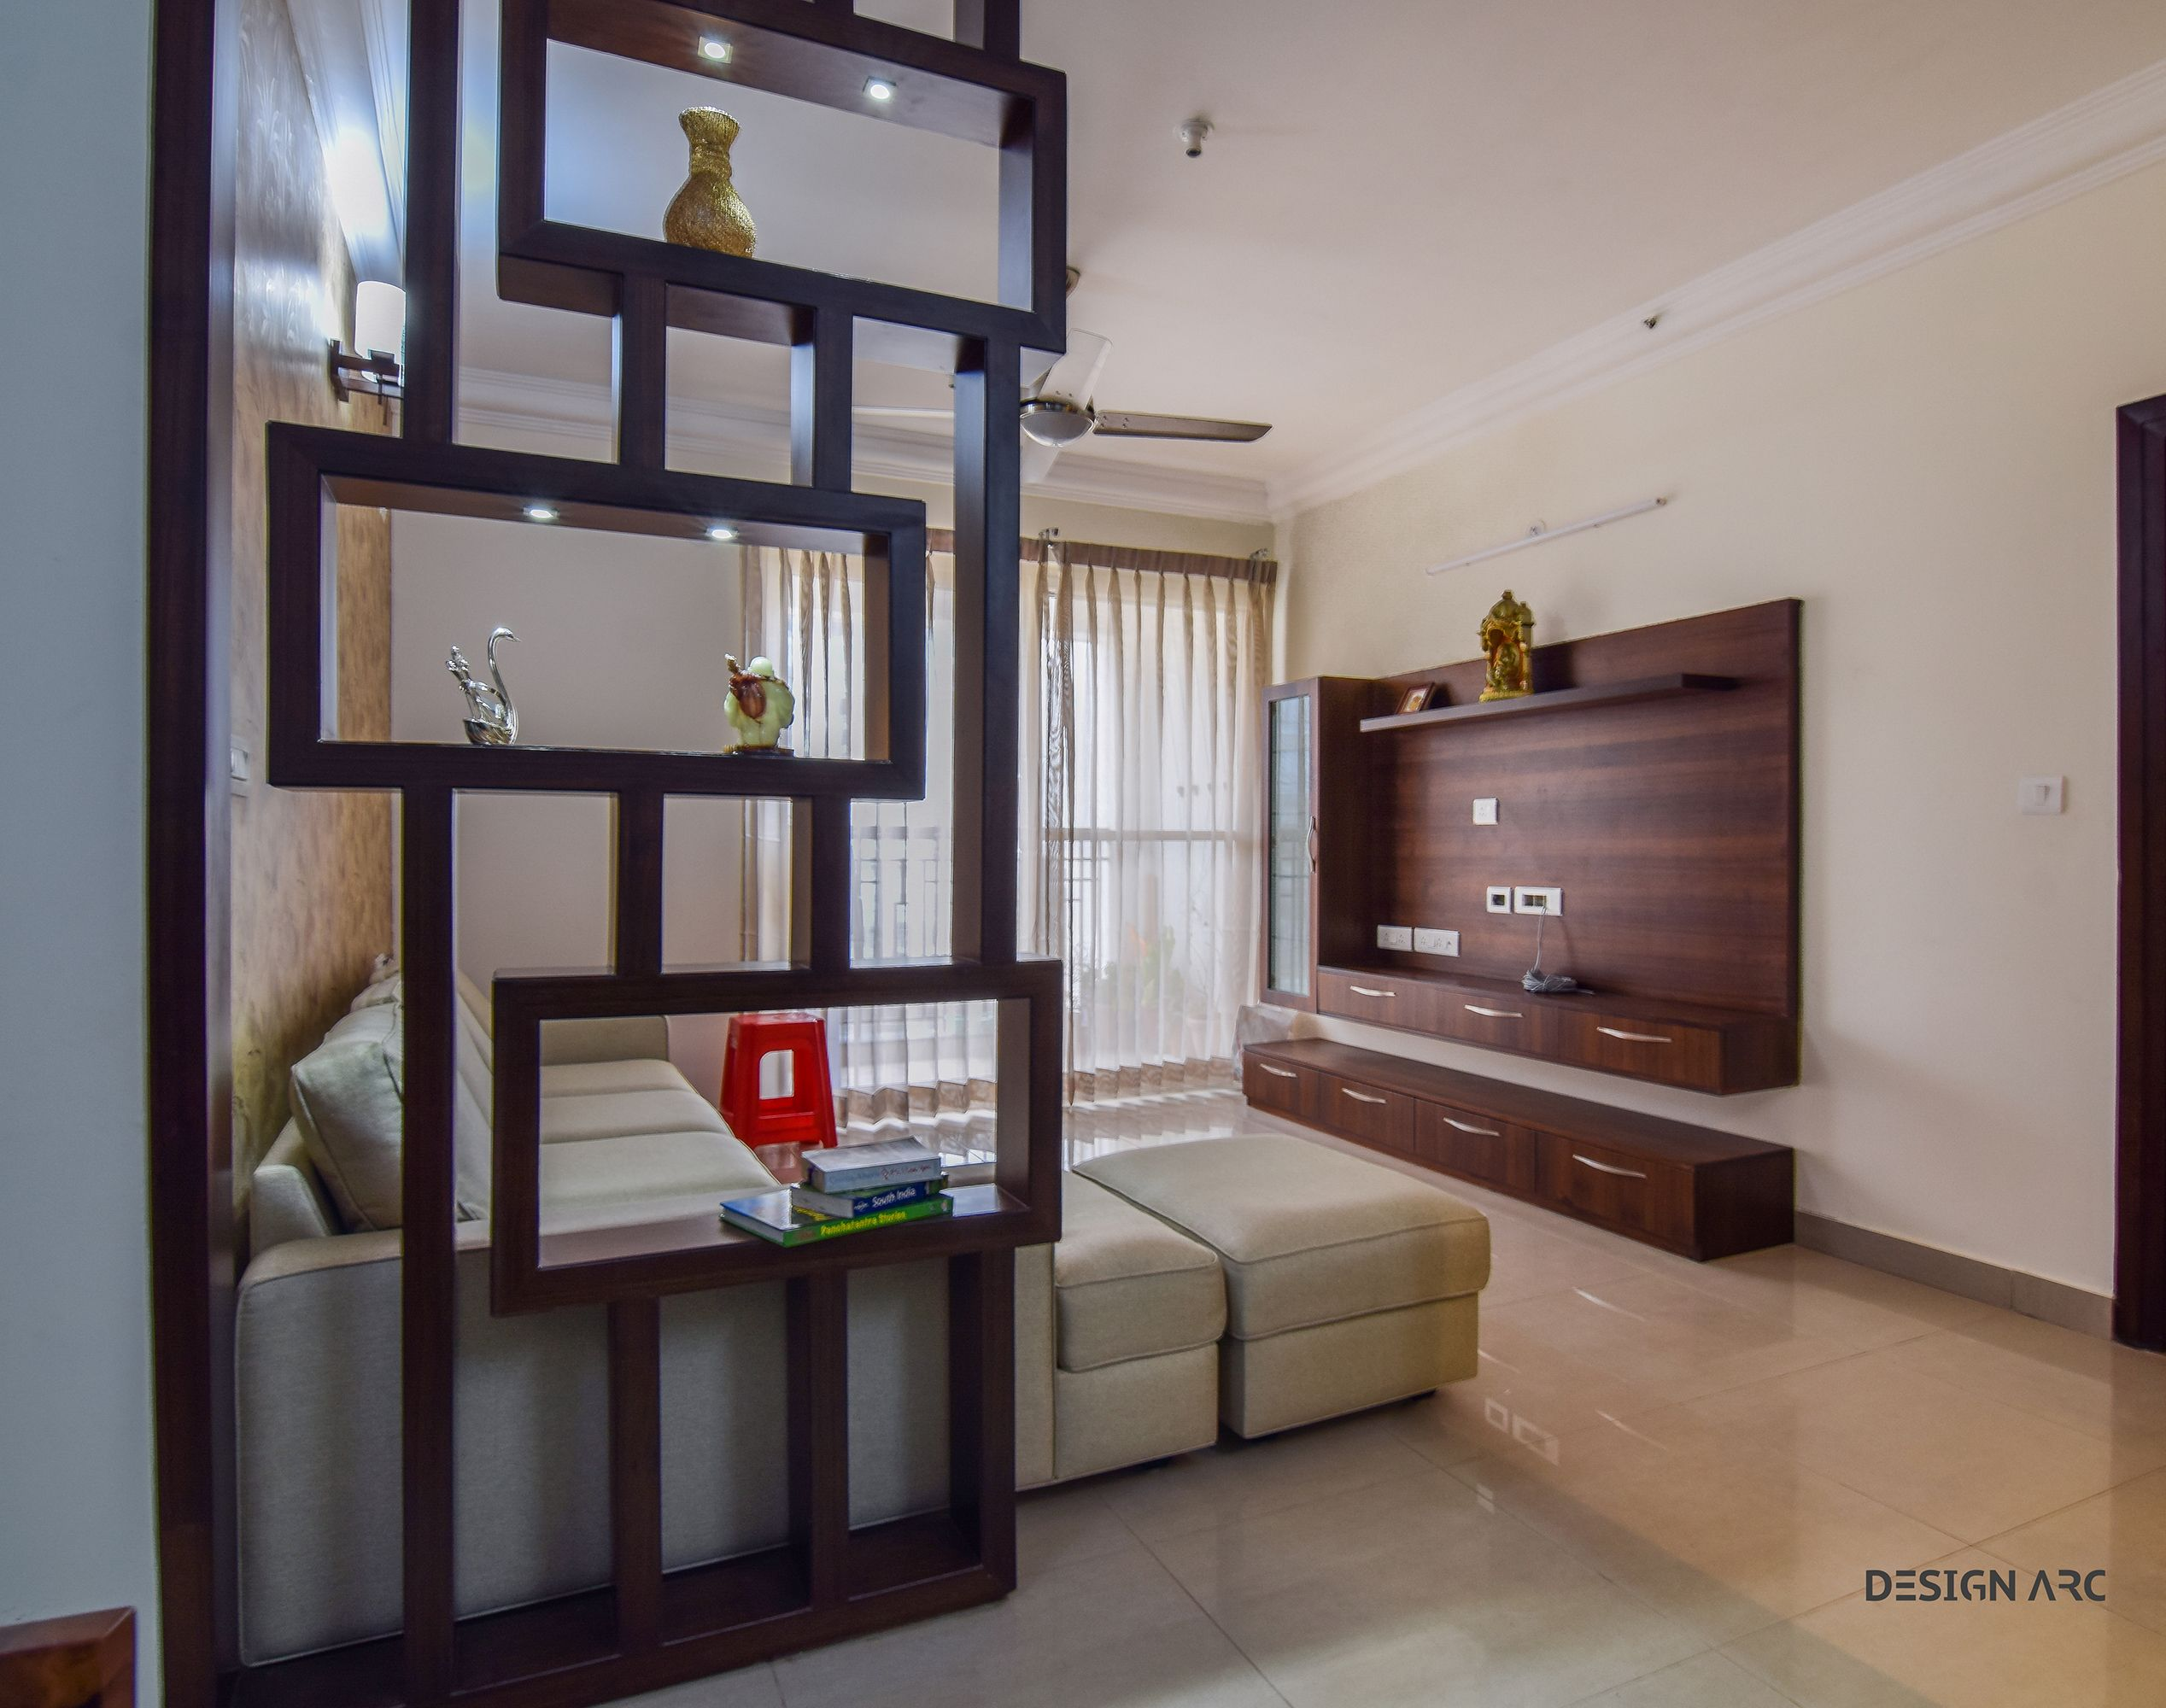 interior design bangalore tv unit design concept living room interior apartment interior room